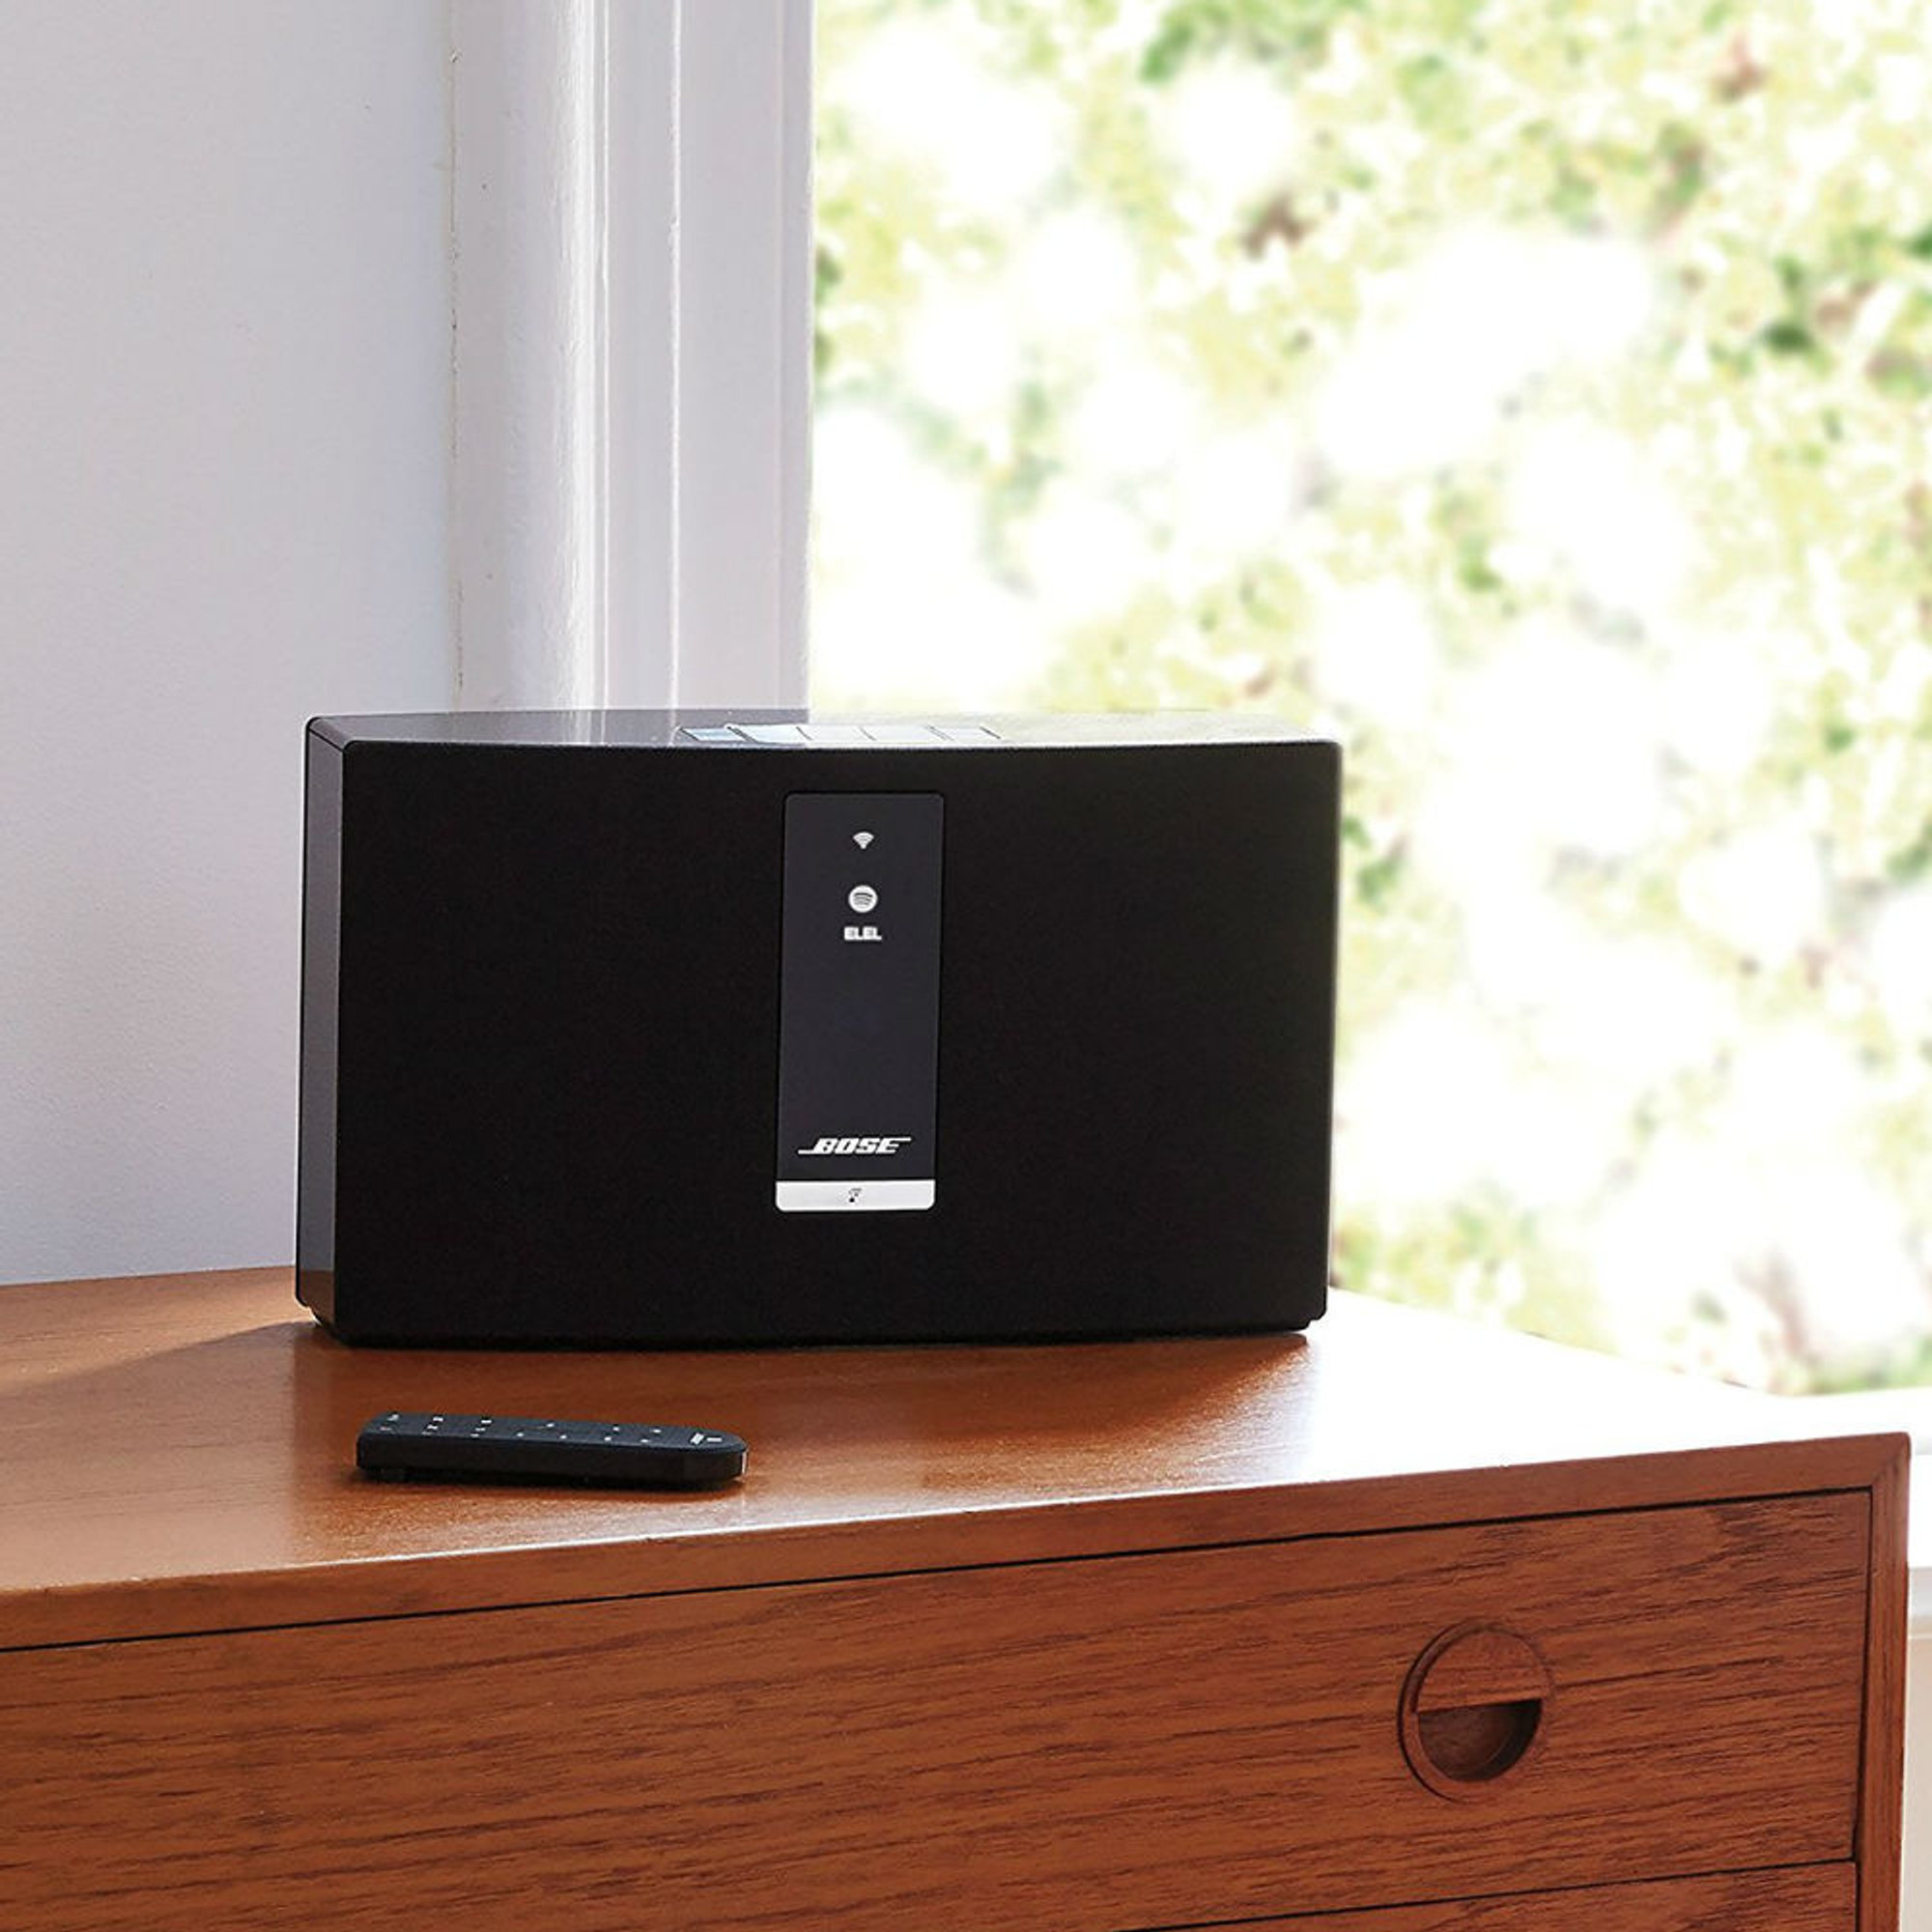 ... Bose SoundTouch 20 Series III Wireless Speaker (Black) ... 14c0118bb987e